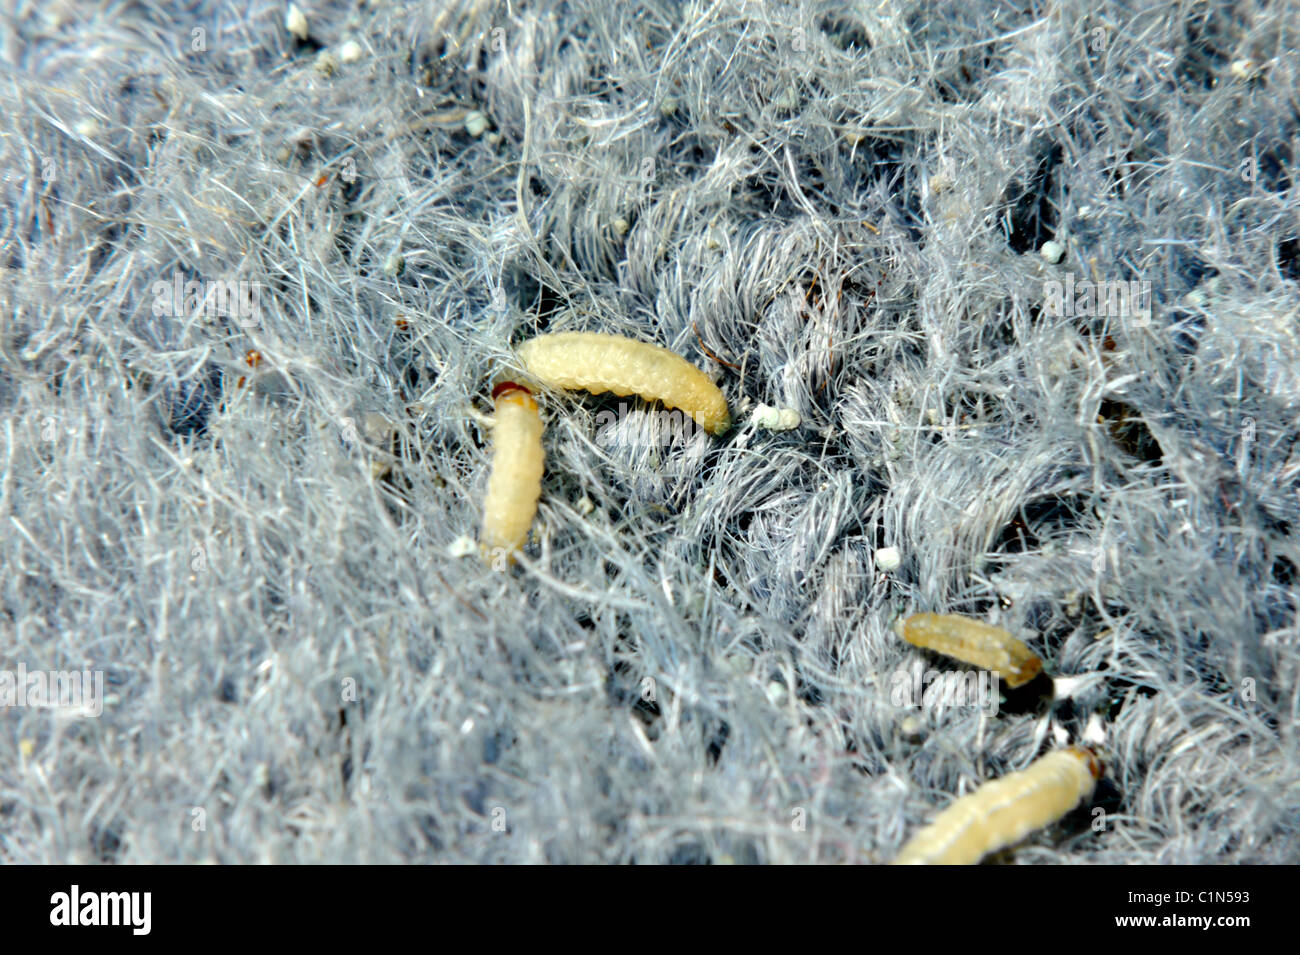 how to get maggots out of carpet